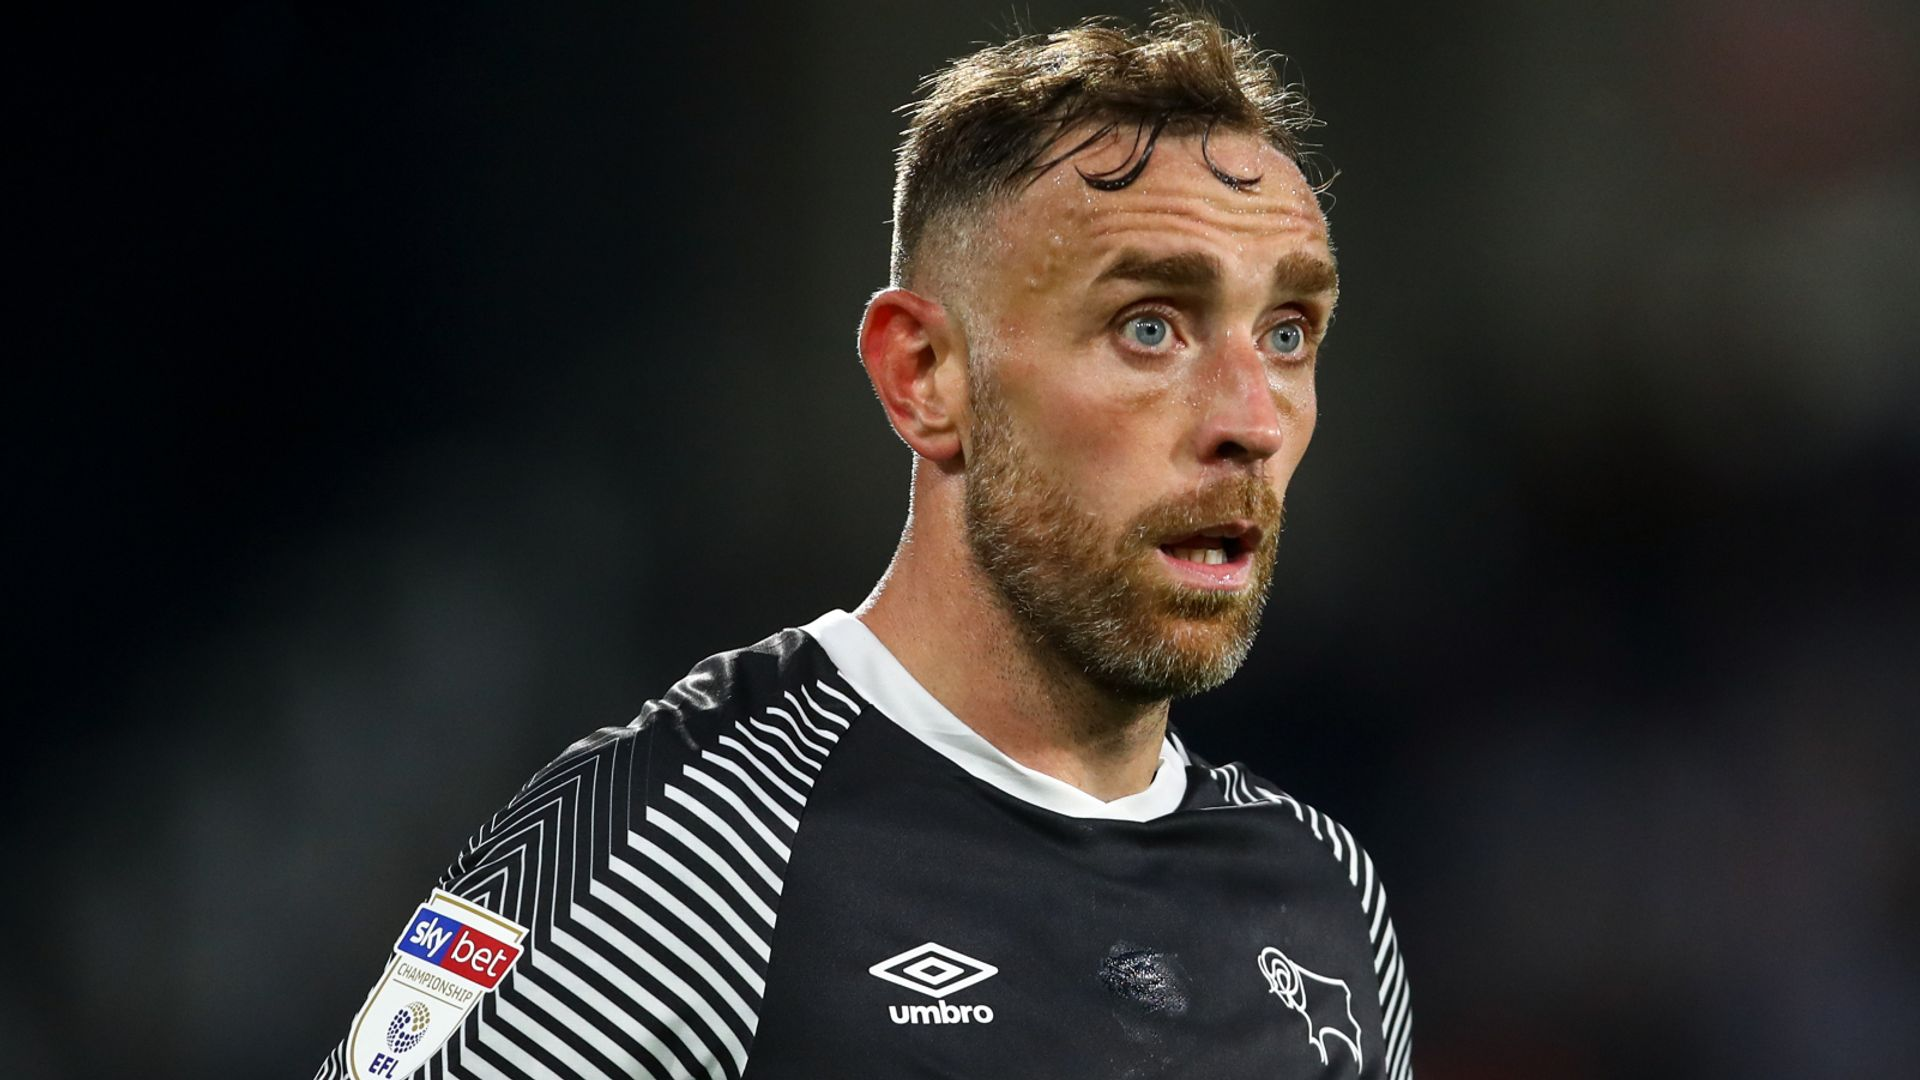 Keogh returns to football with MK Dons